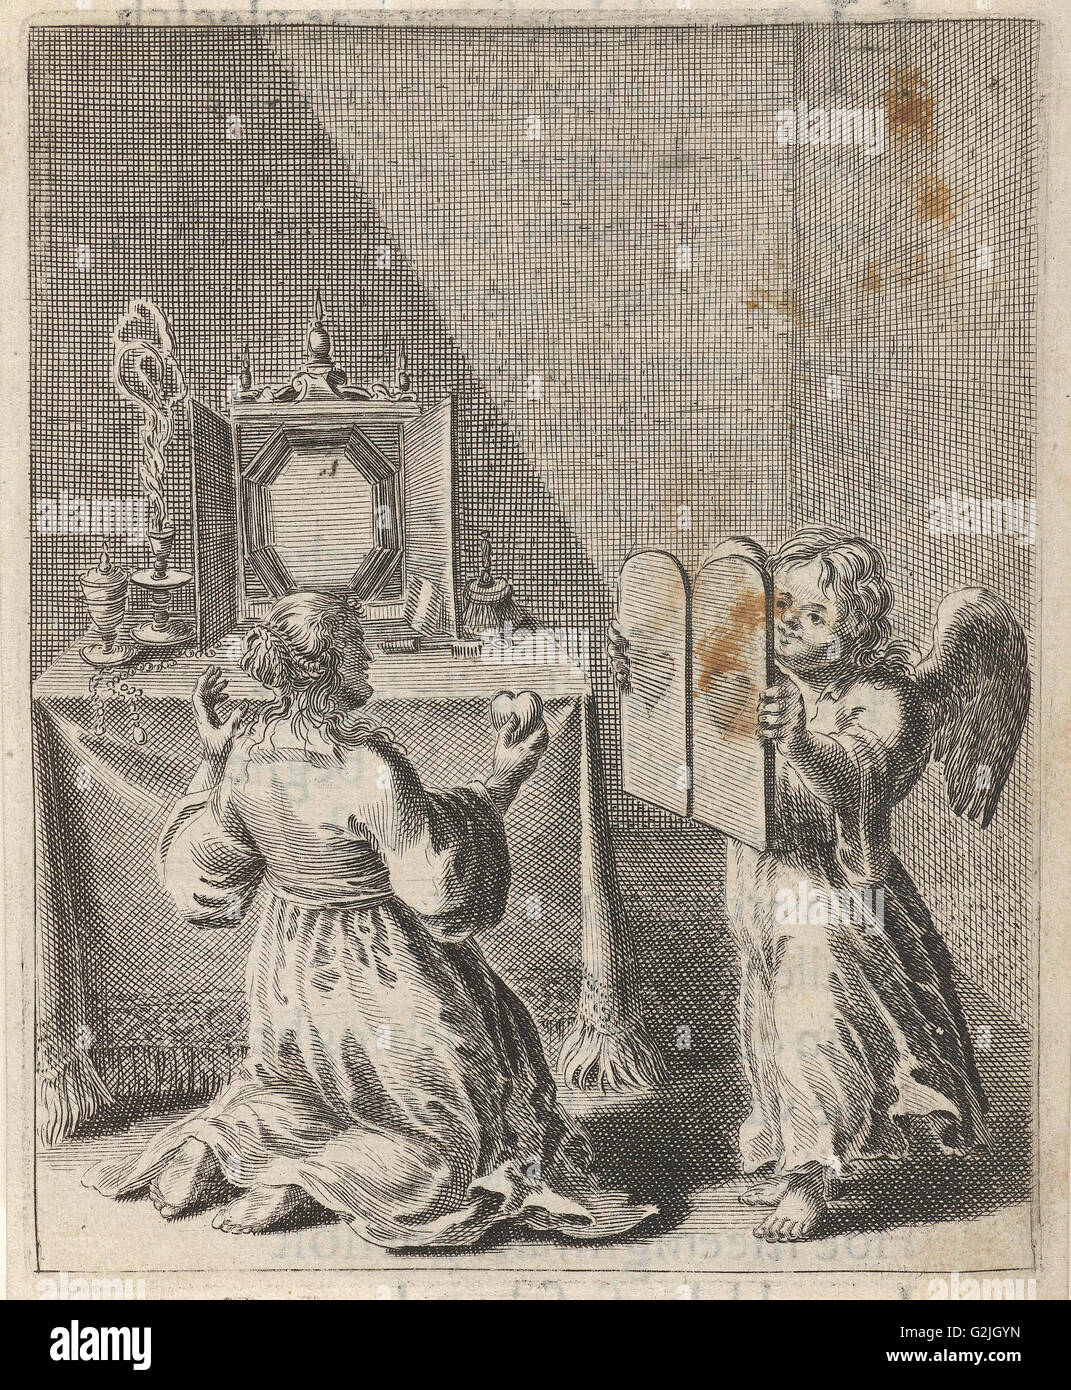 Confession for vanity and pride, print maker: Pieter Nolpe, 1640